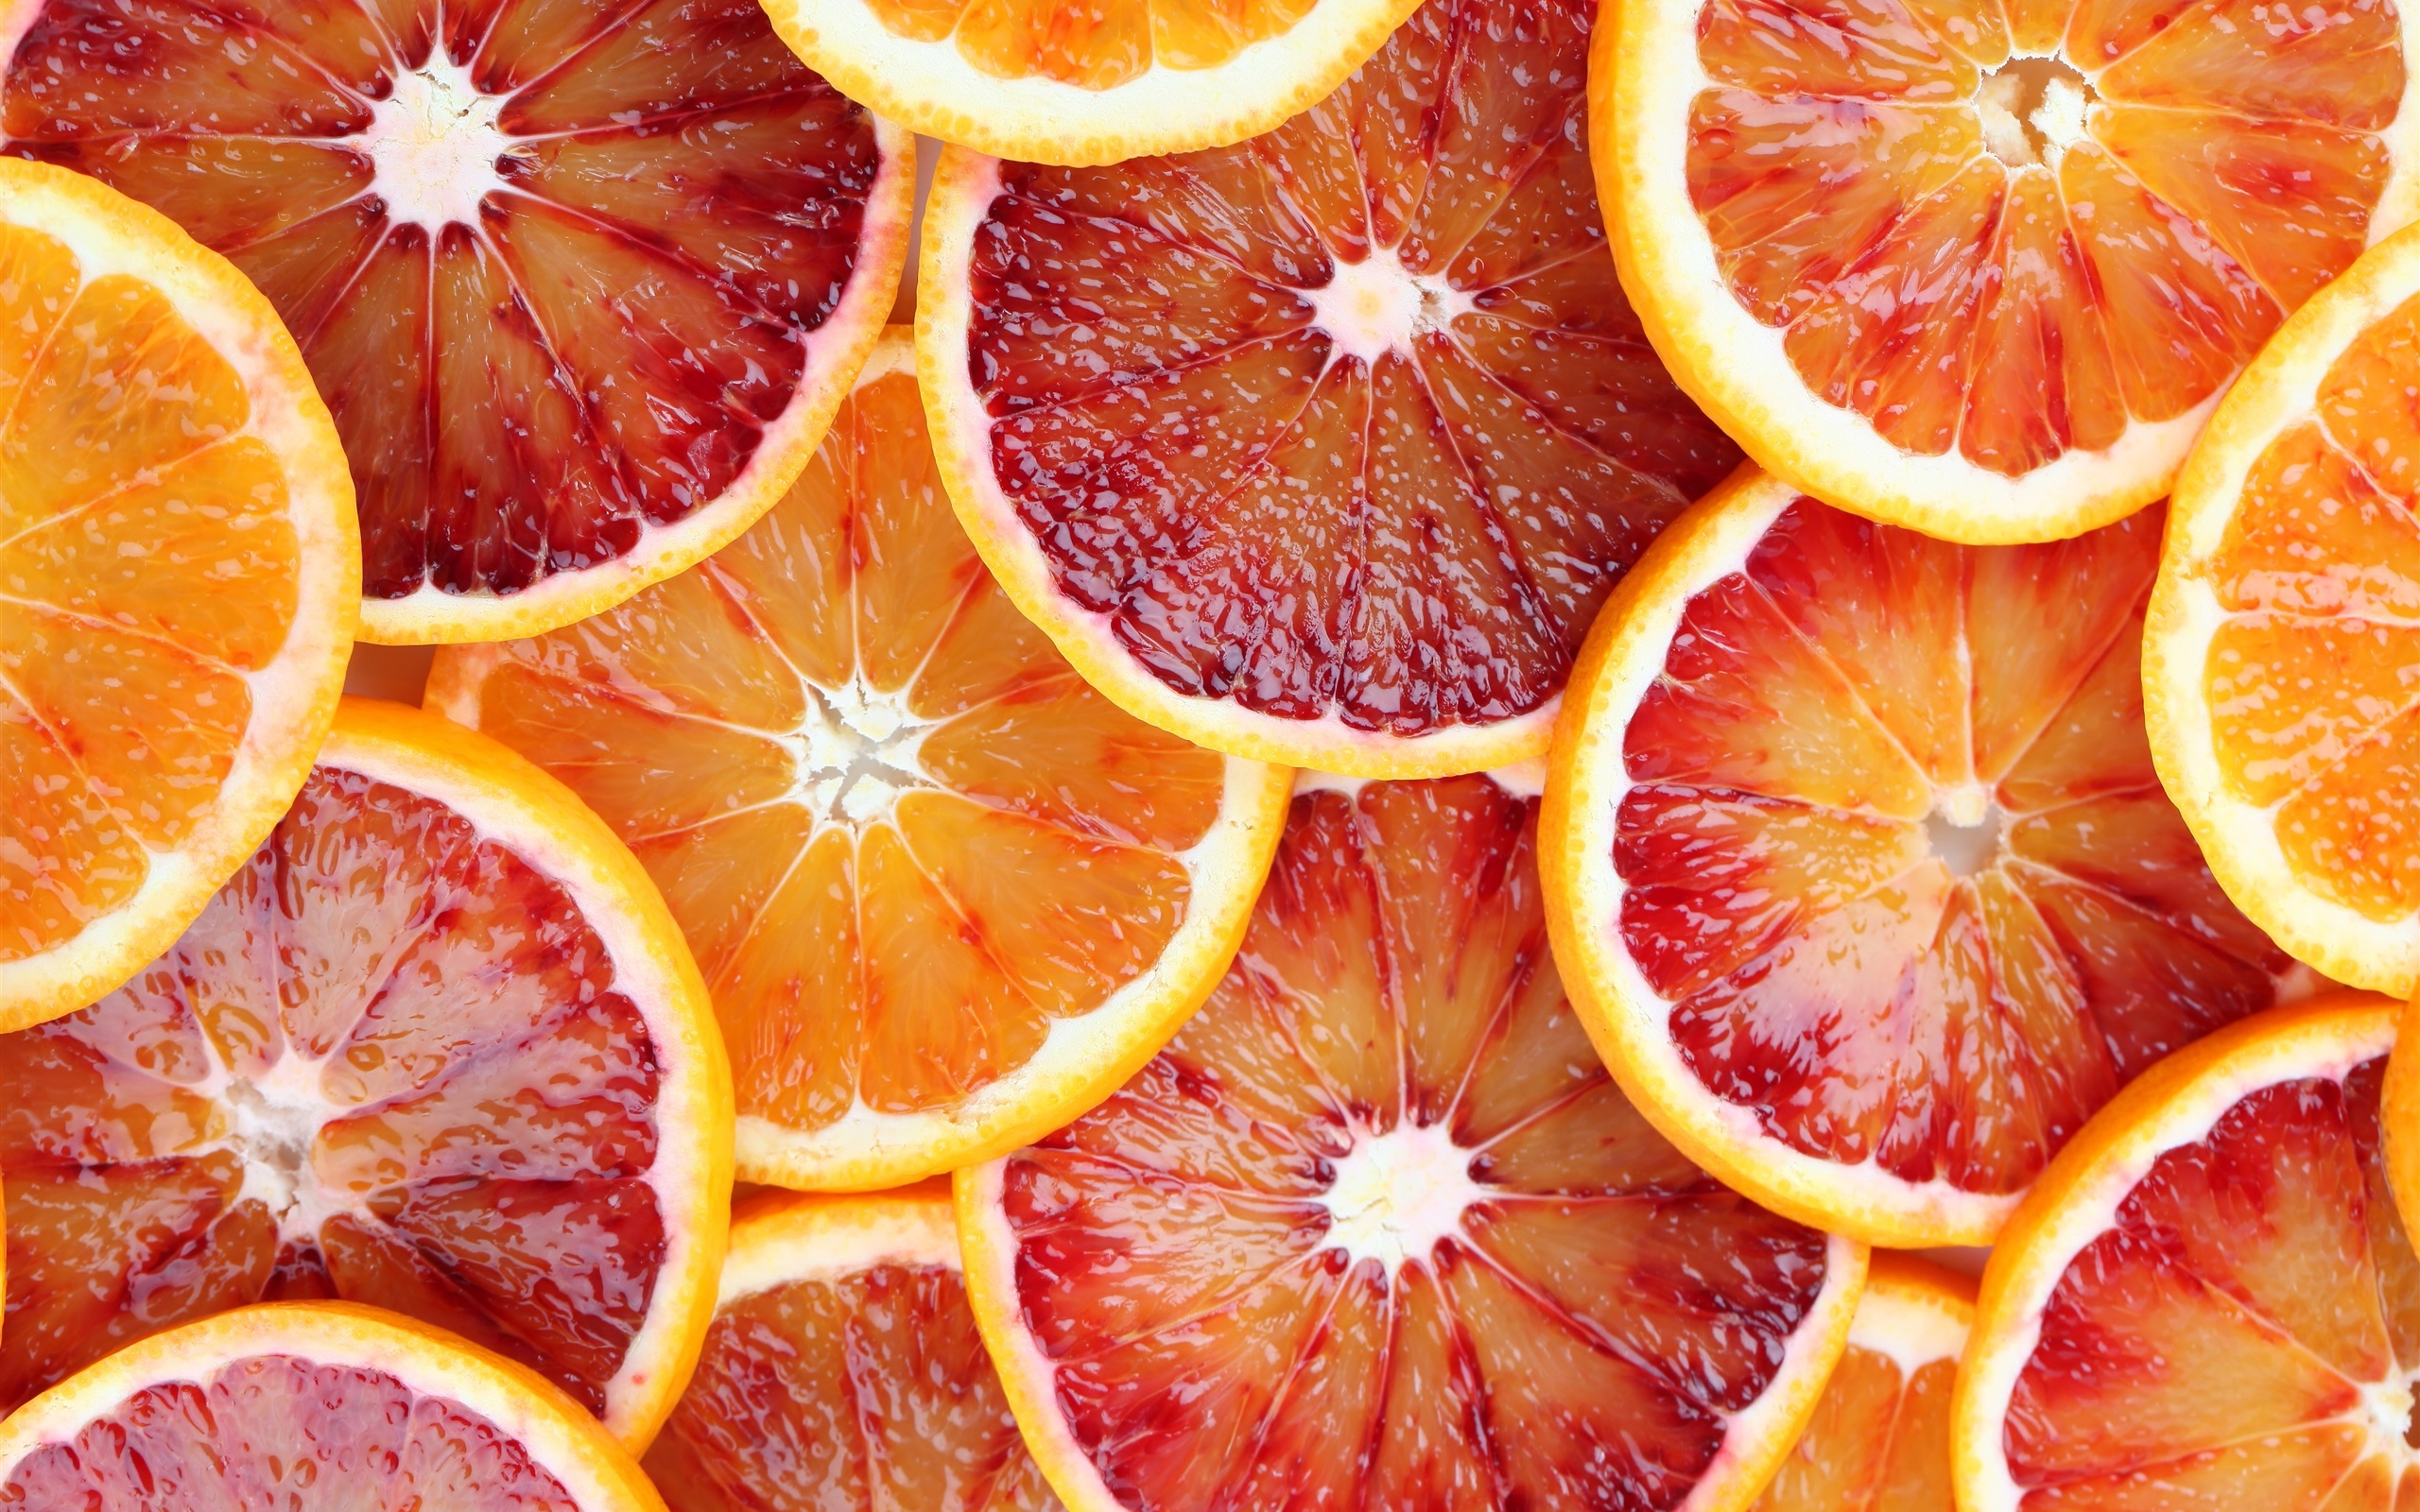 Wallpaper Fruit slices oranges grapefruit juice red and yellow 2560x1600